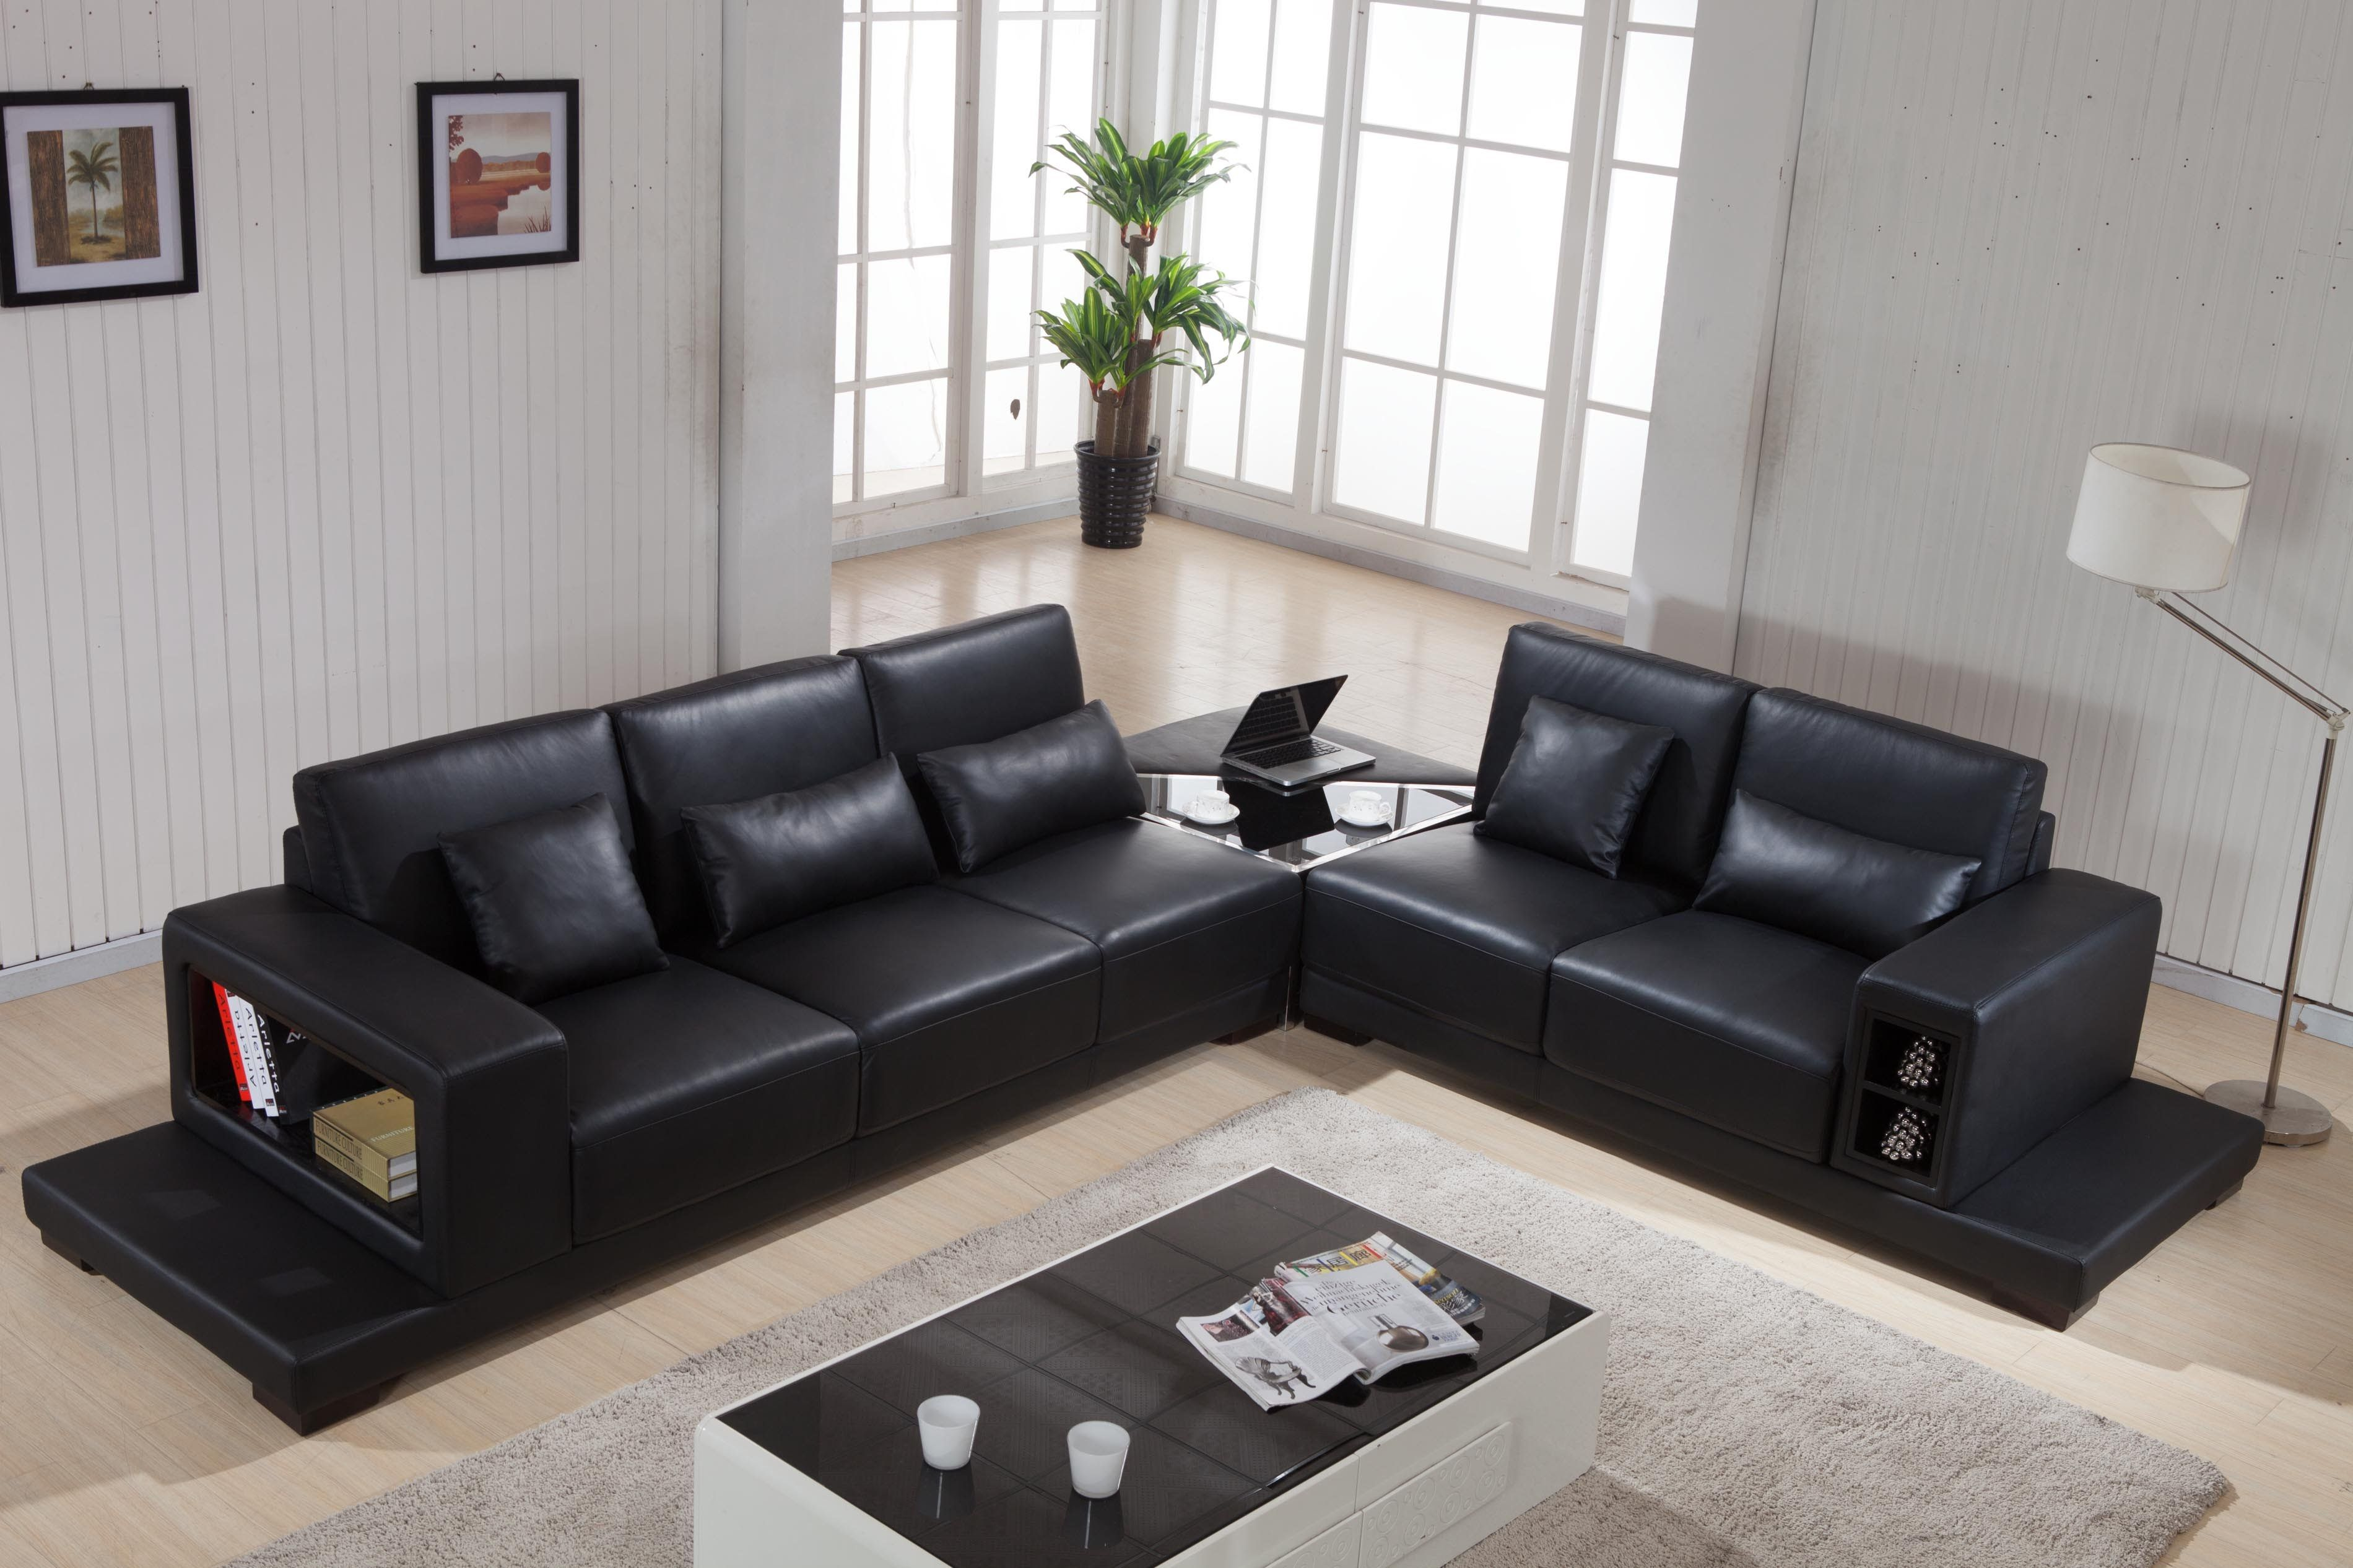 Sofa Sofas For Sale Near Me In 2020 With Images Leather Sofa Living Room Sofa Design Living Room Sofa